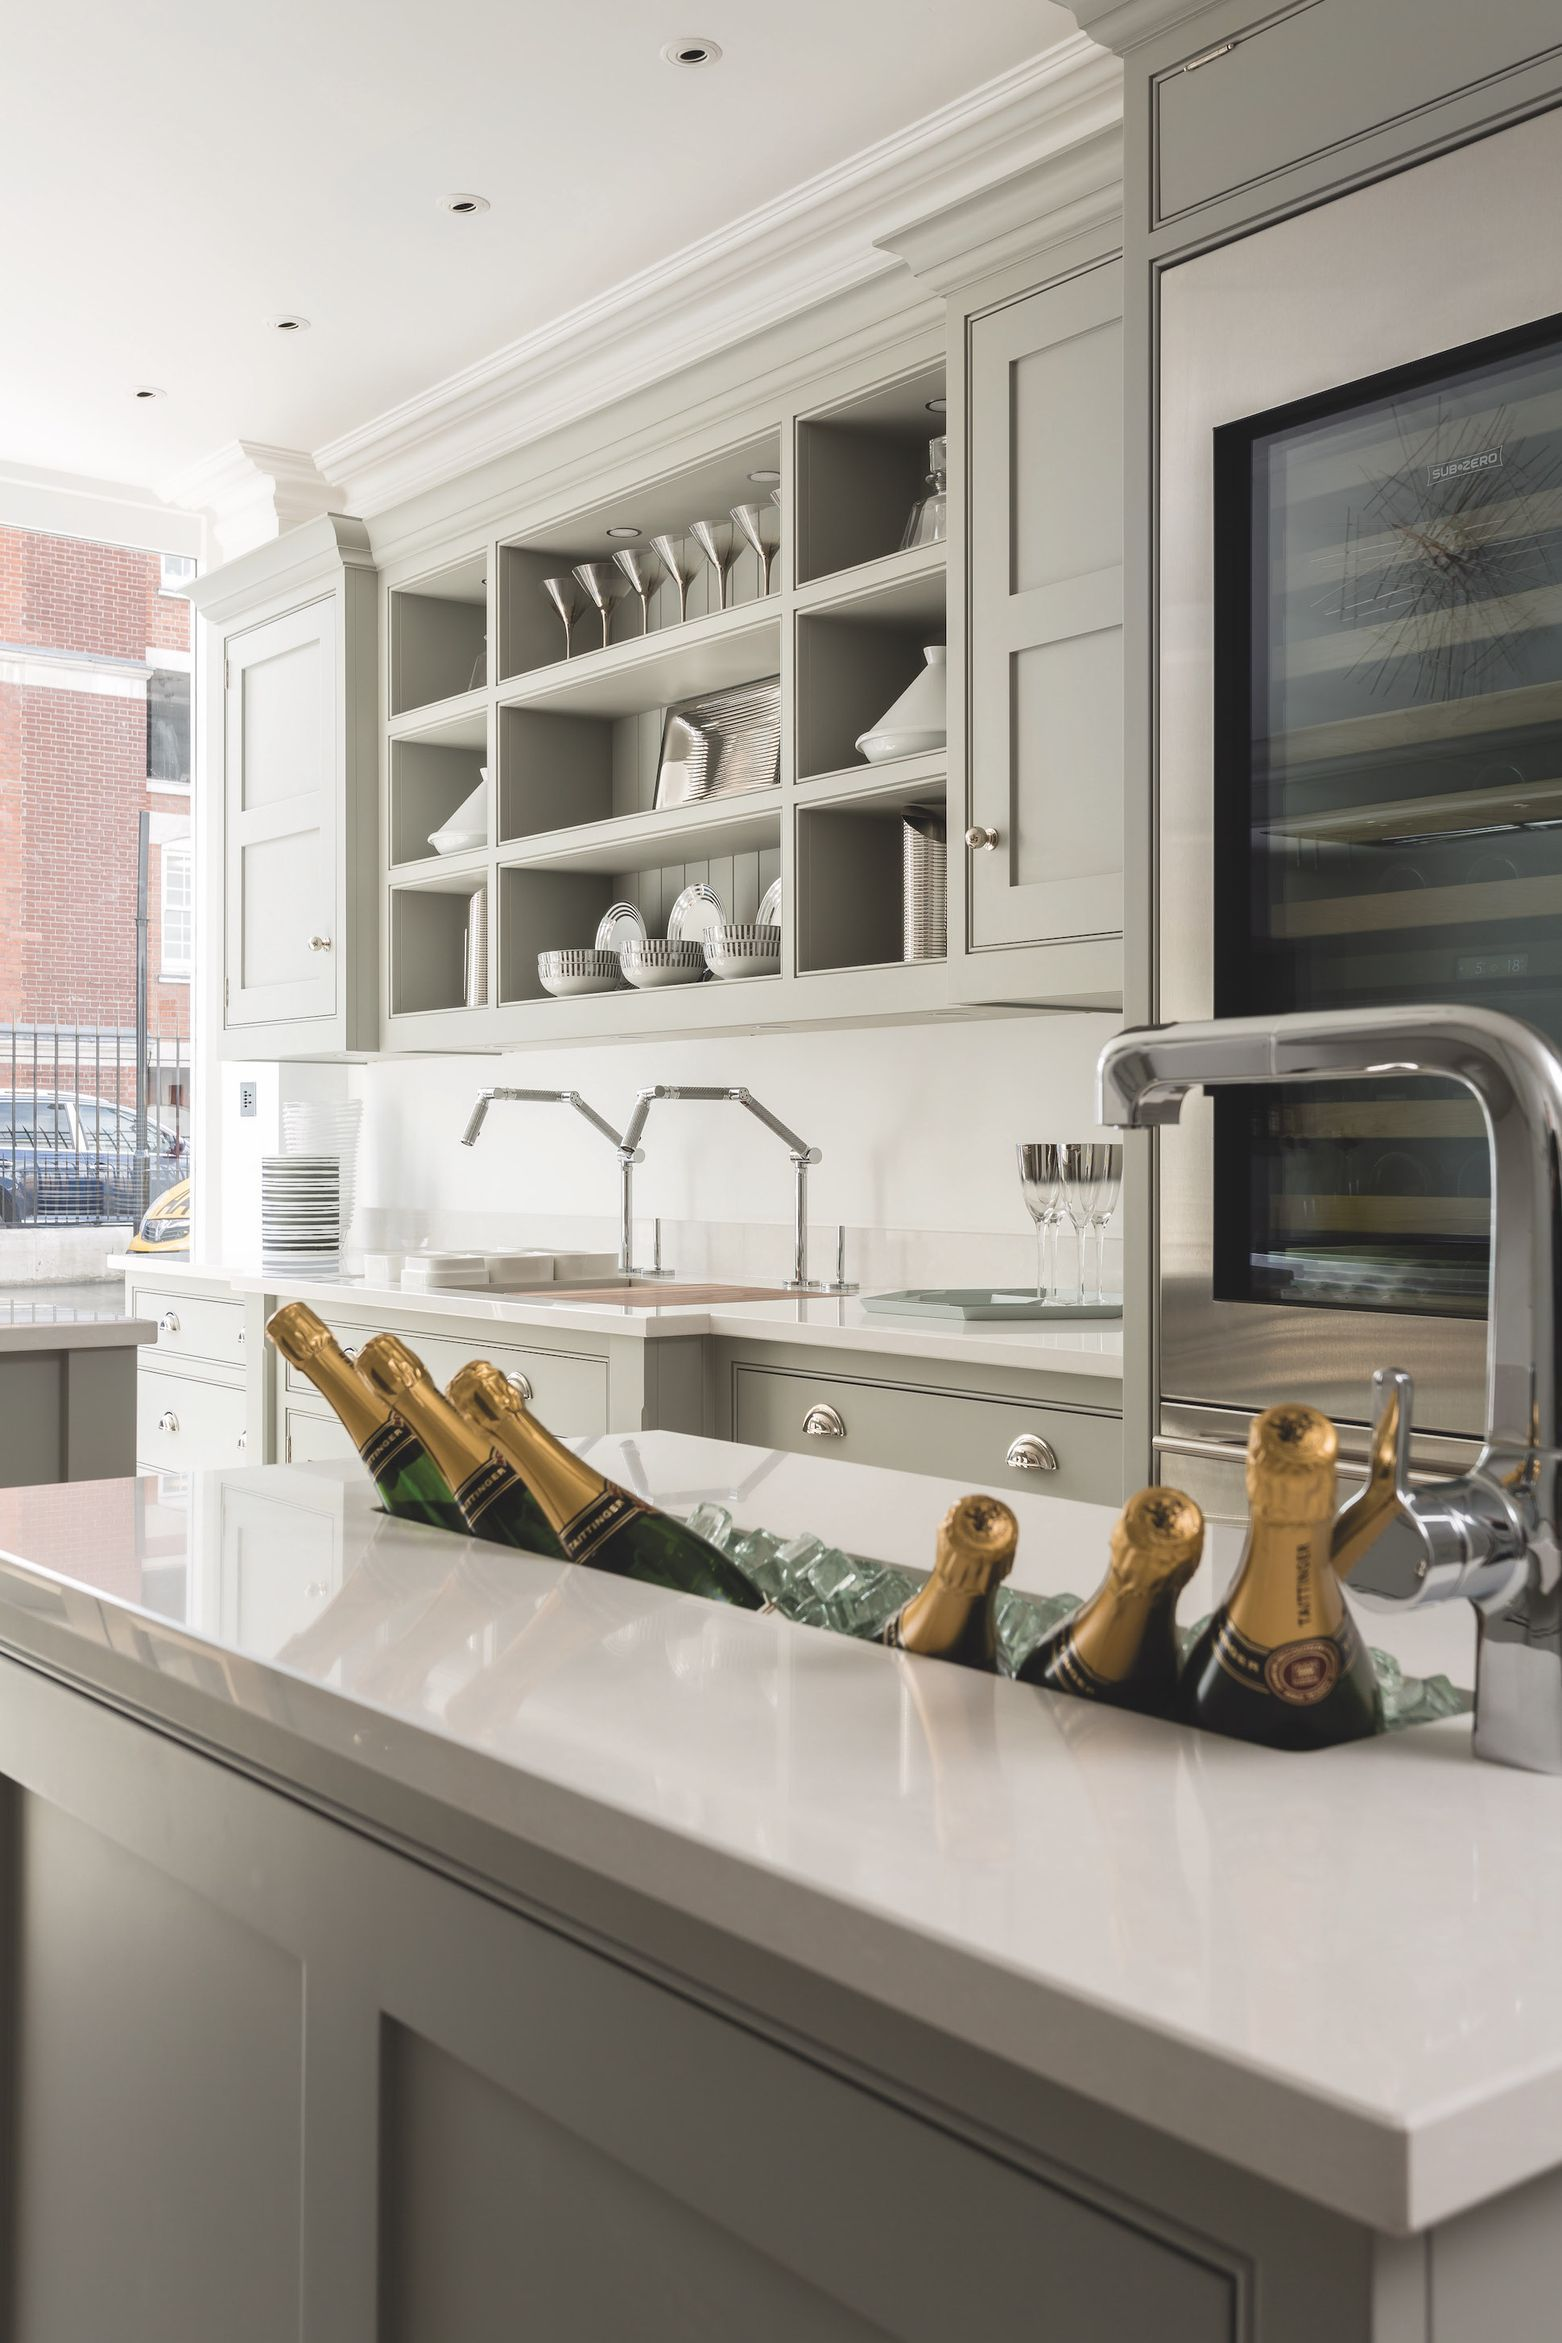 20 kitchen trends for 2020 you need to know about